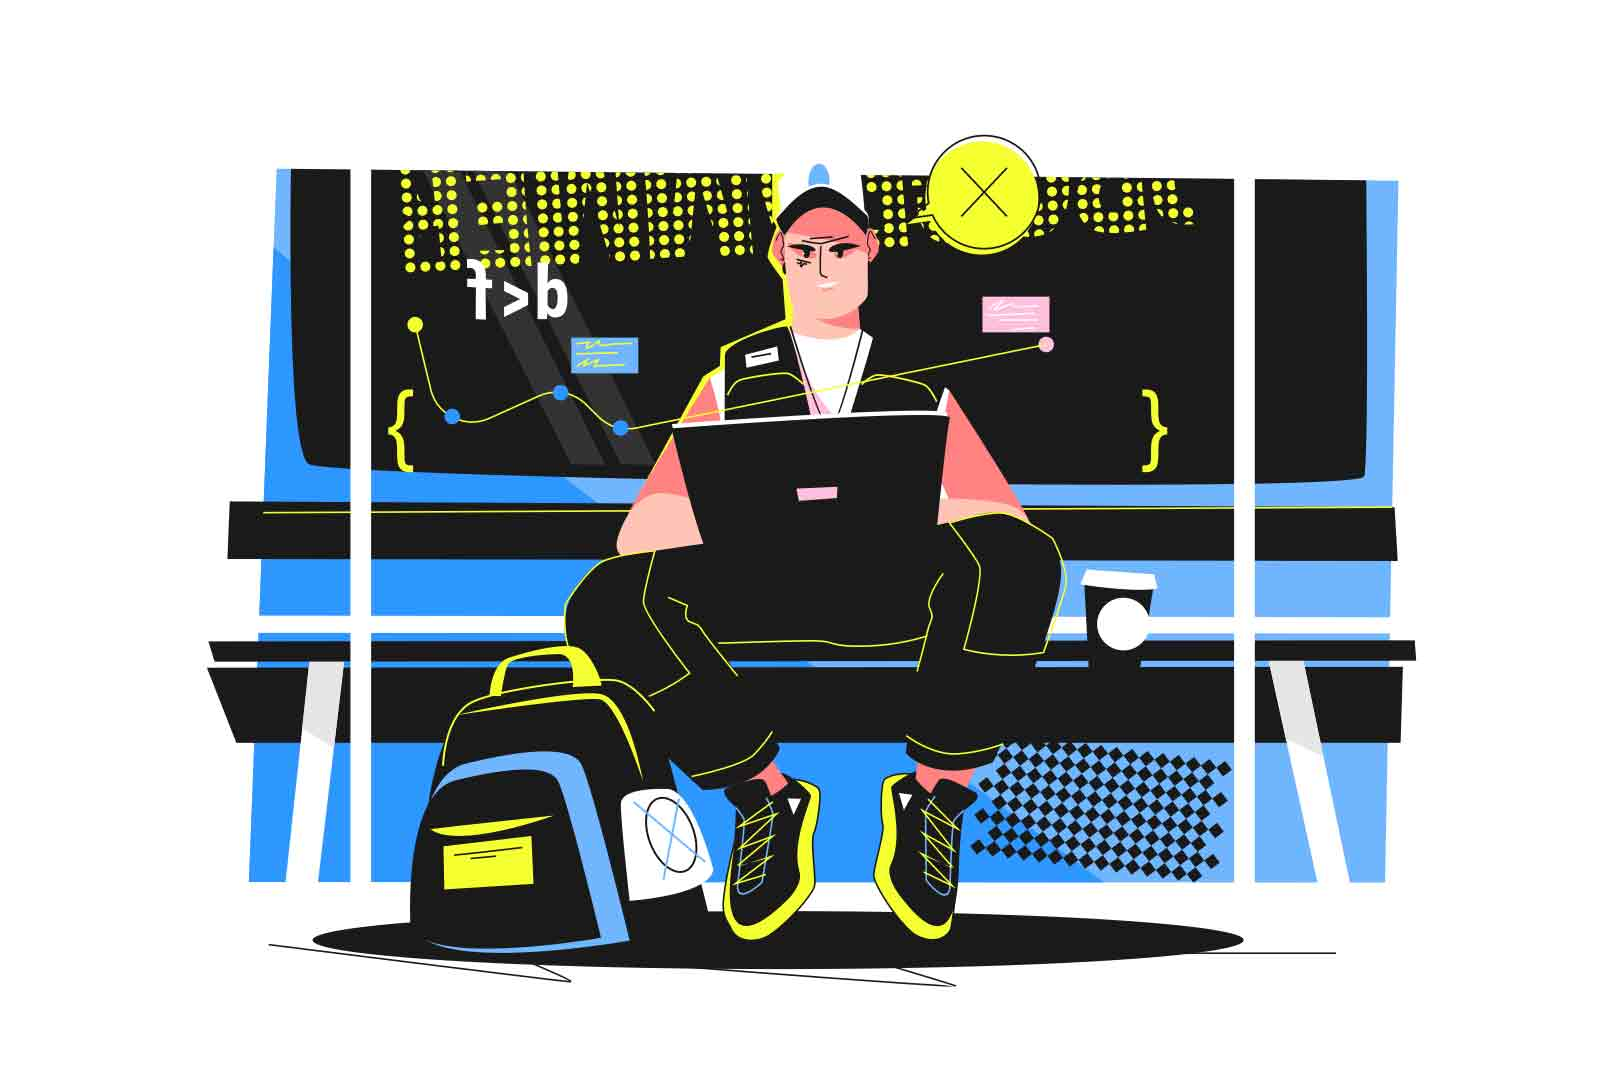 Guy programming on a laptop in subway vector illustration. Study modern computer technology flat style. Computer science, coding concept